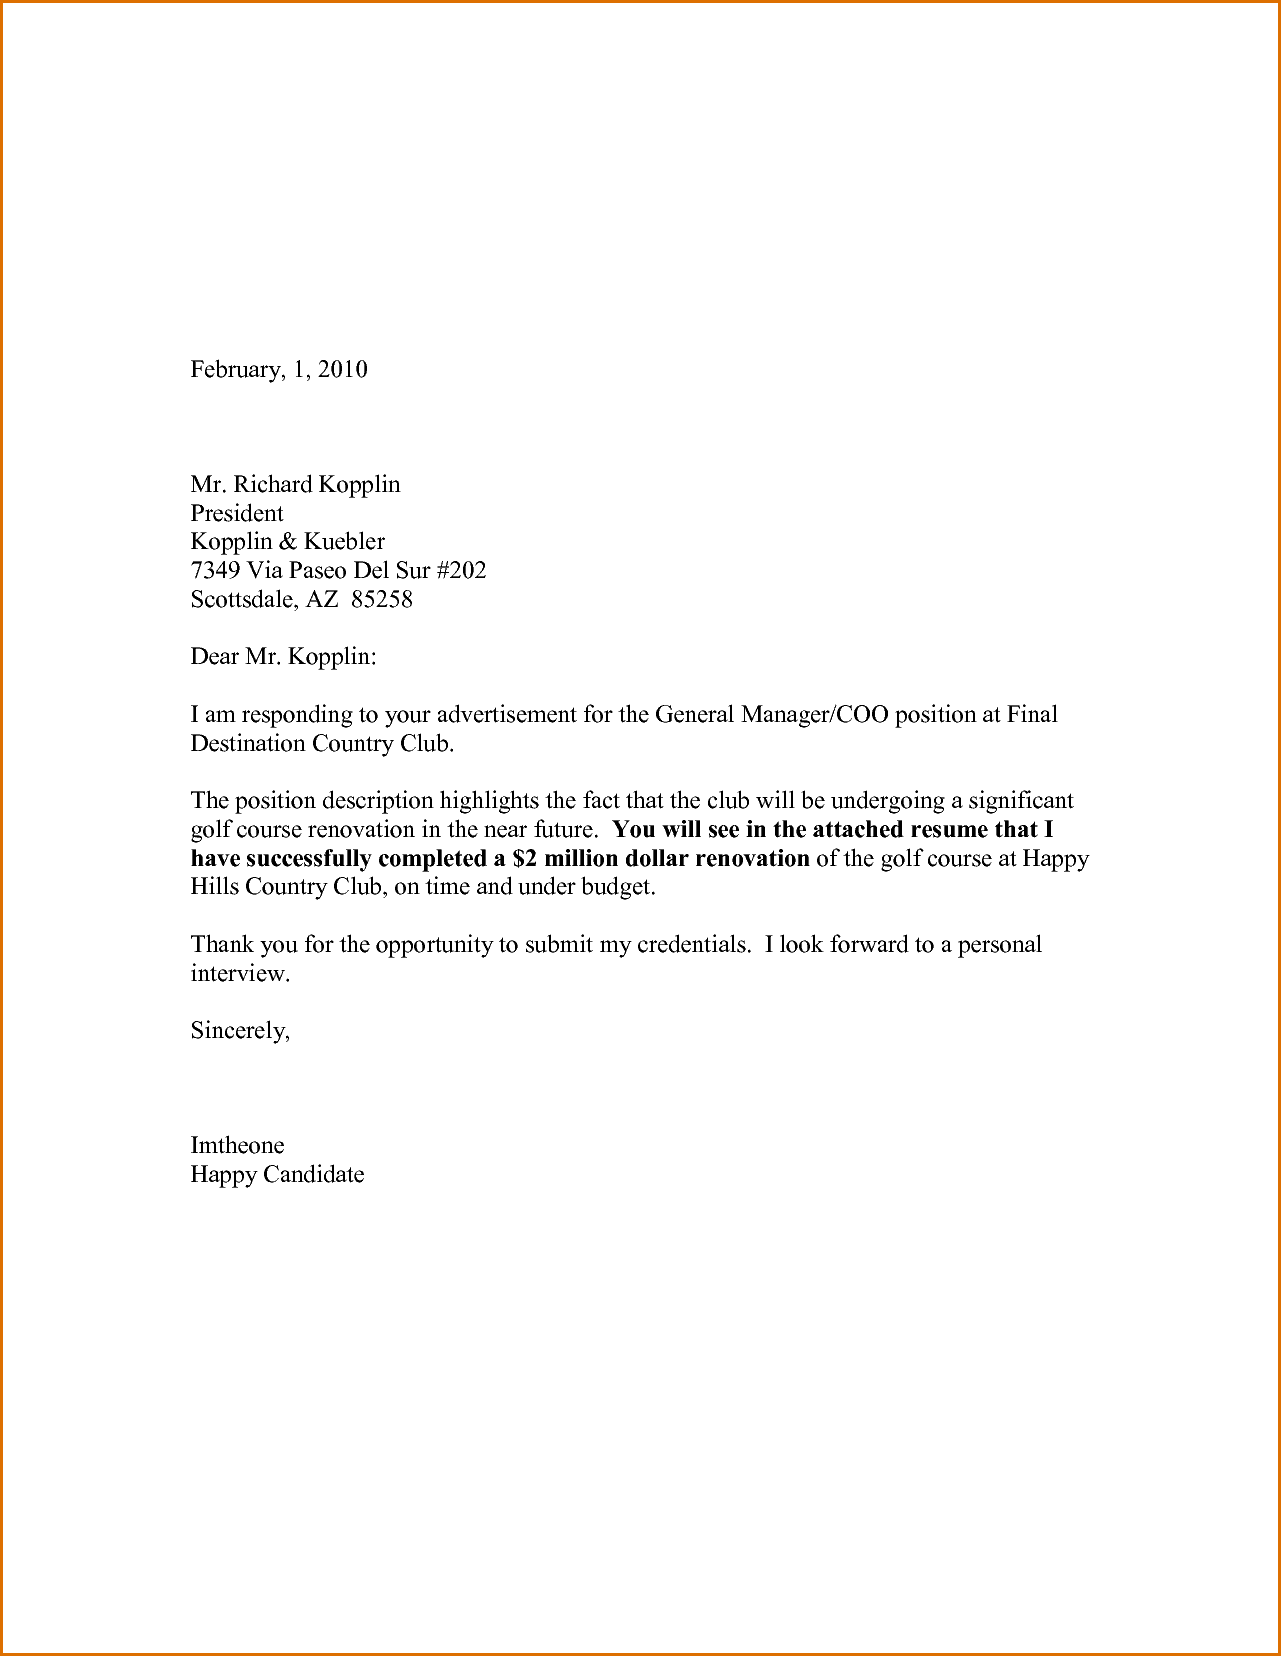 Secretary cover letter no experience cover letter example for a secretary cover letter no experience cover letter example for a legal secretary job in the spiritdancerdesigns Image collections